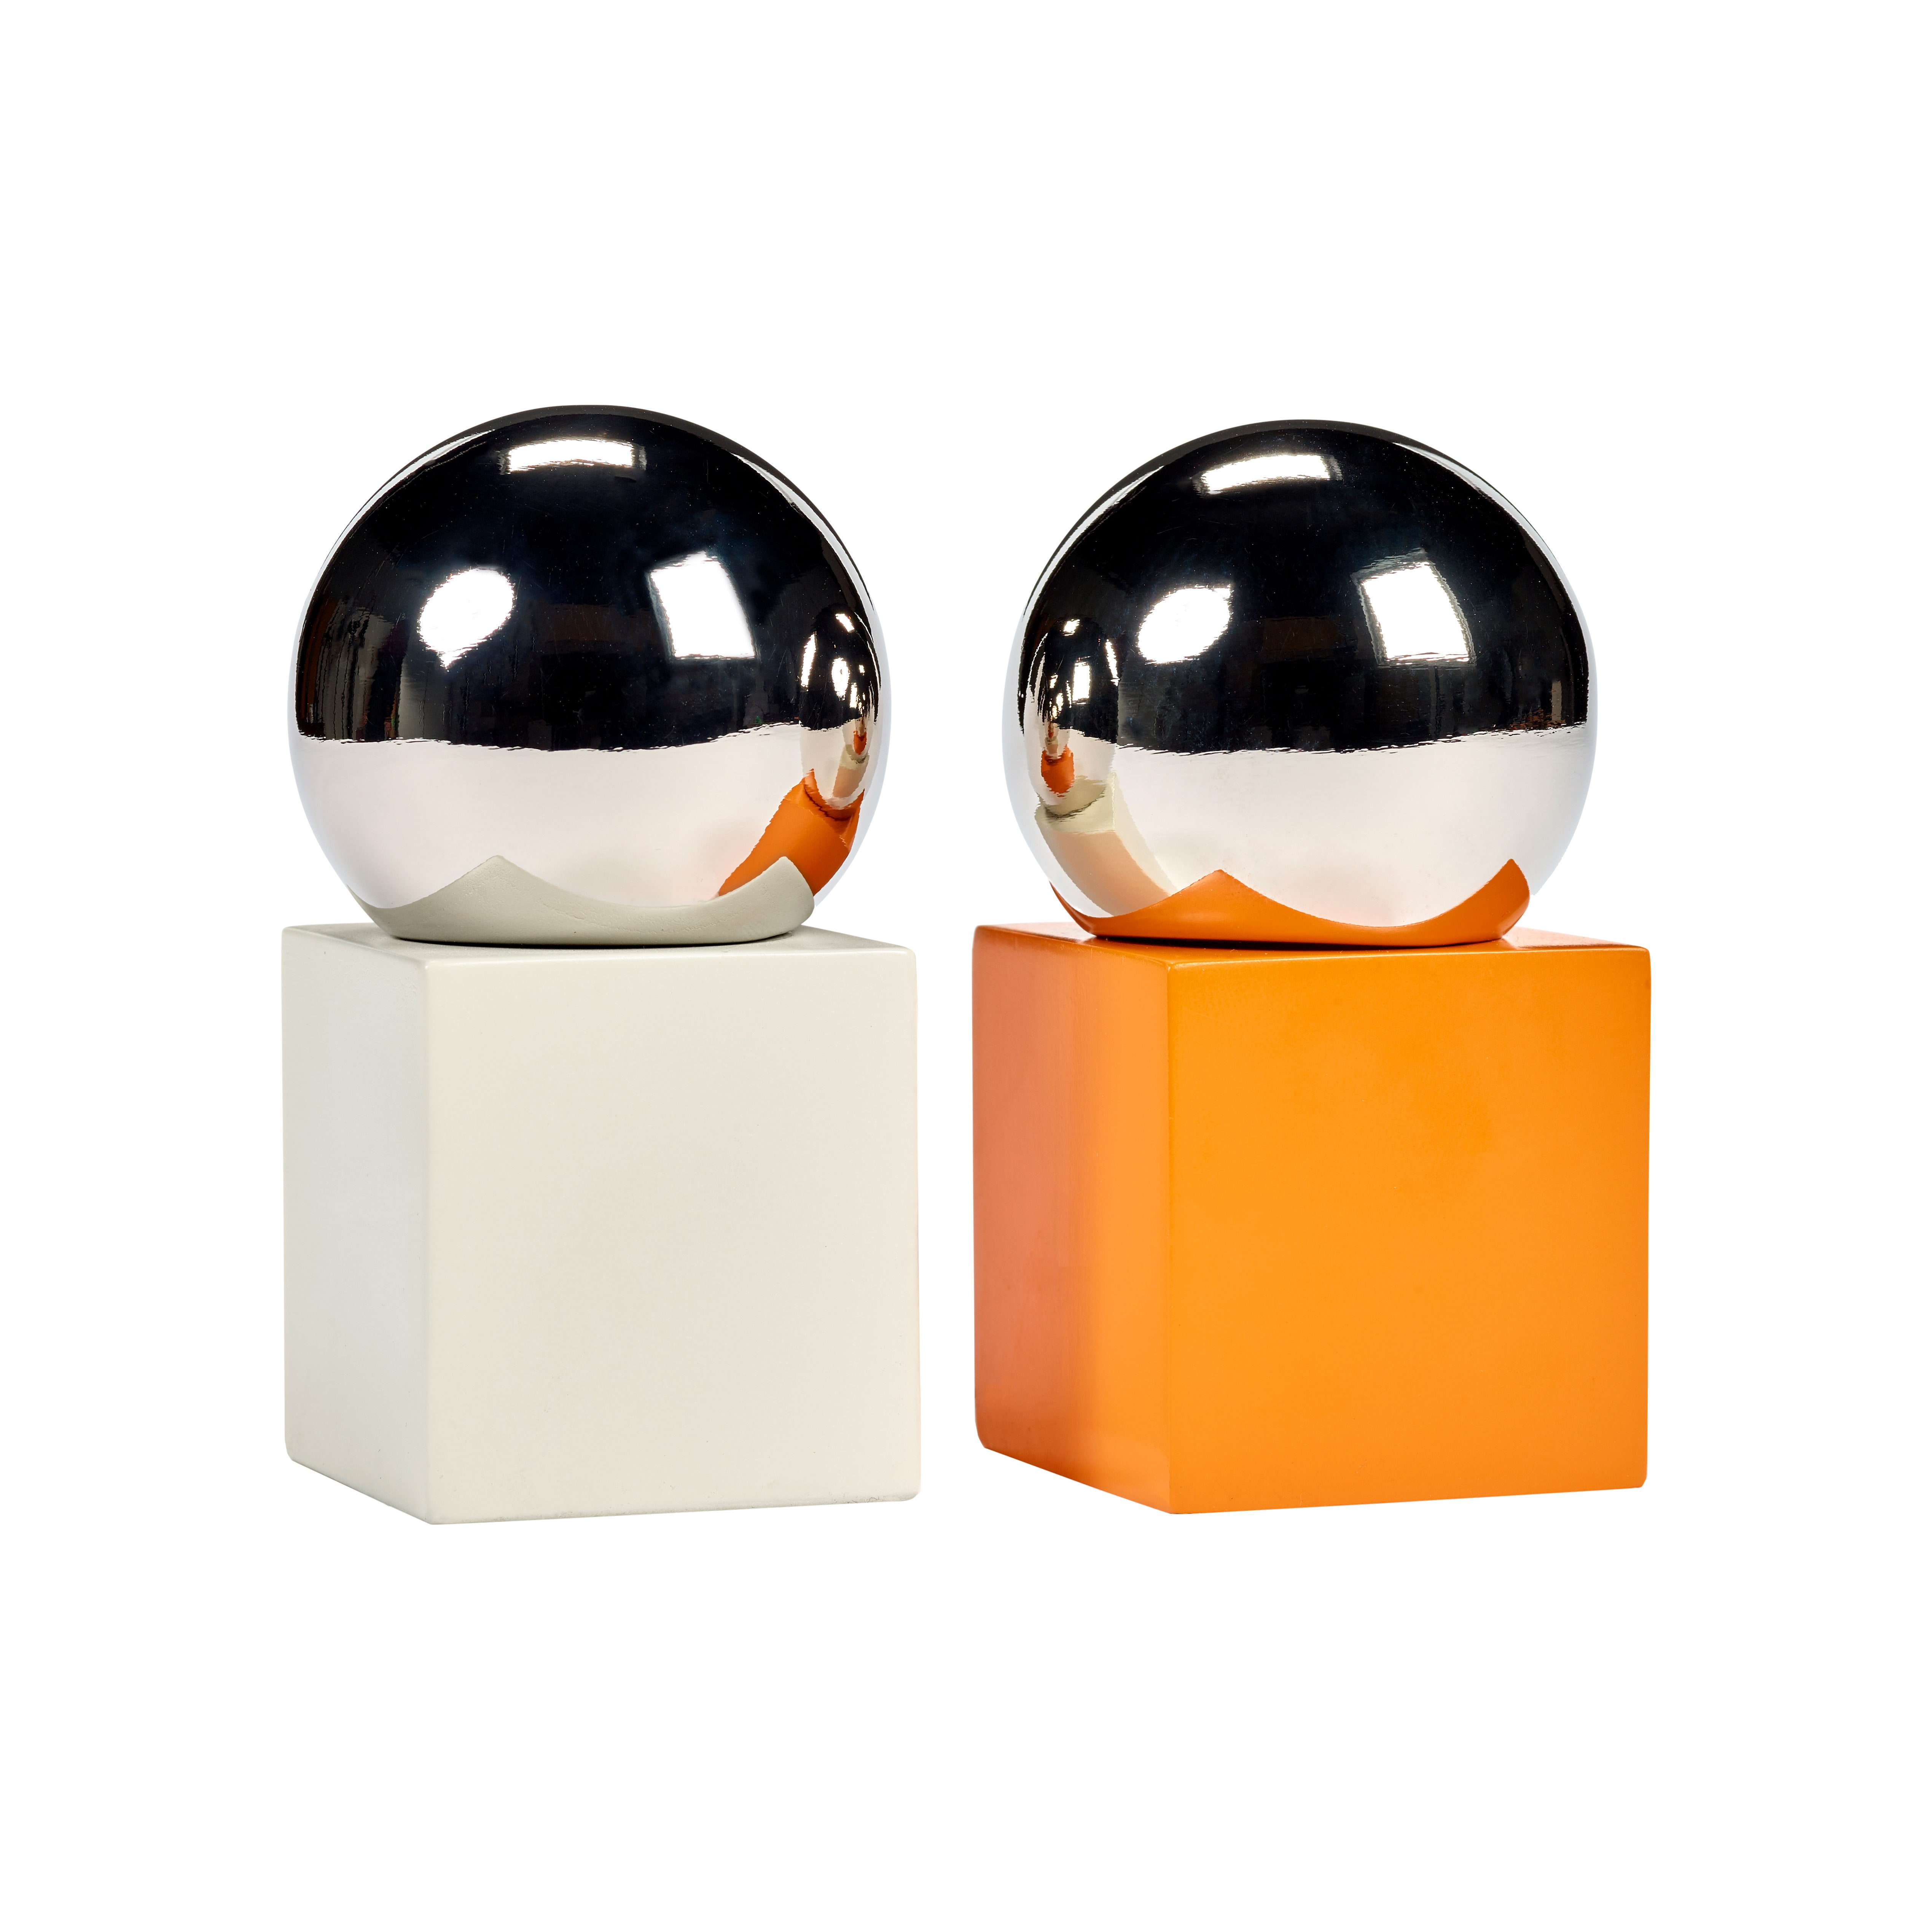 9 of Our Favorite Salt and Pepper Shakers to Spice Up Any Table